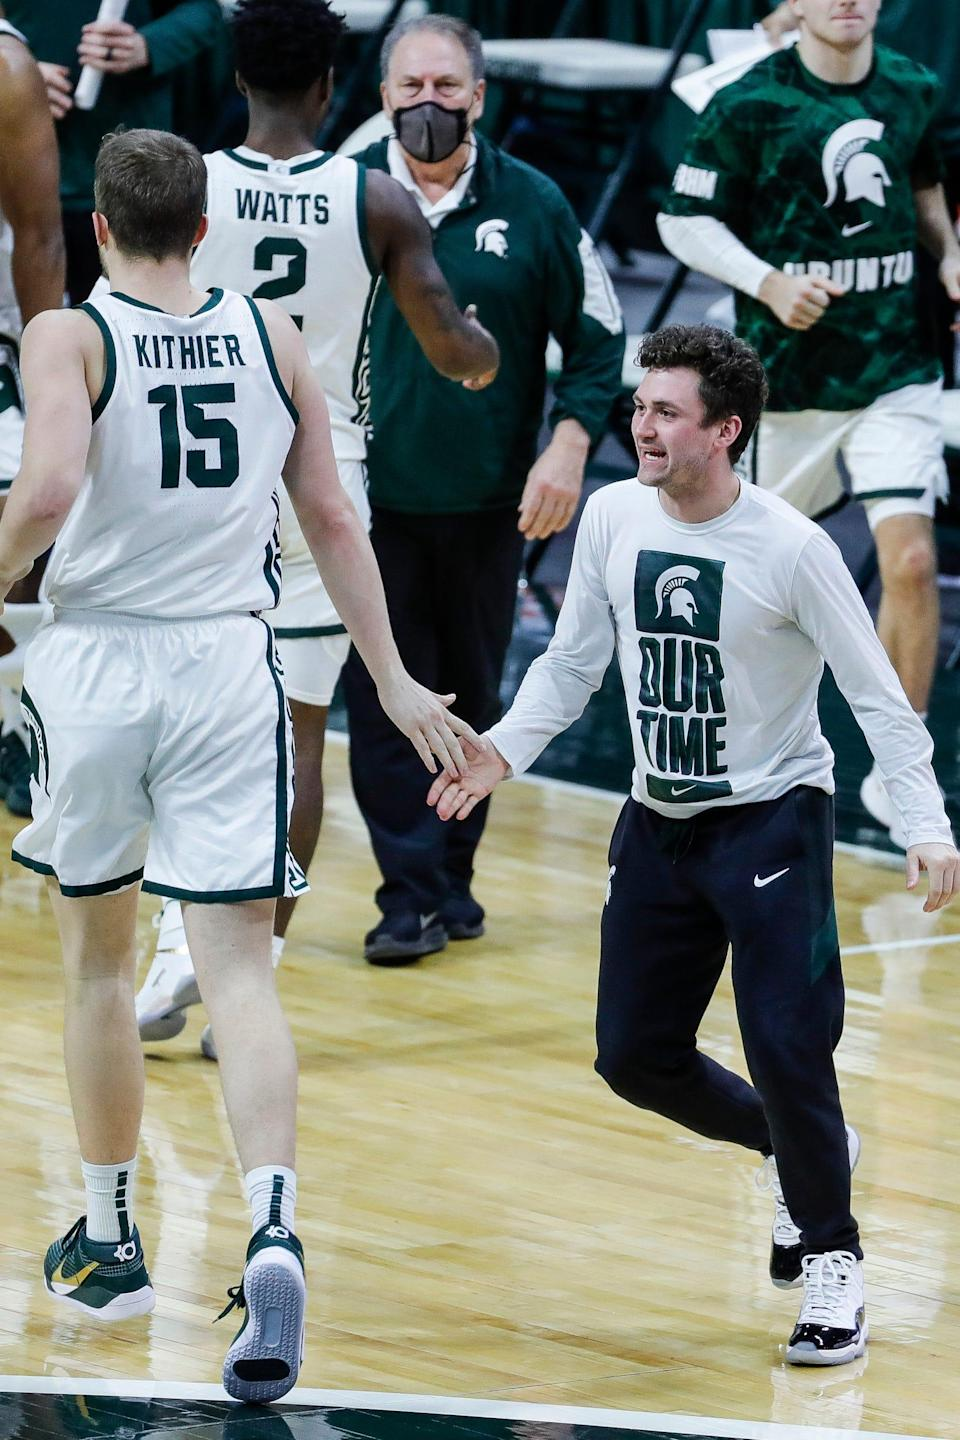 Michigan State guard Foster Loyer (3) high fives forward Thomas Kithier (15) during the first half against Illinois at the Breslin Center in East Lansing, Tuesday, Feb. 23, 2021.